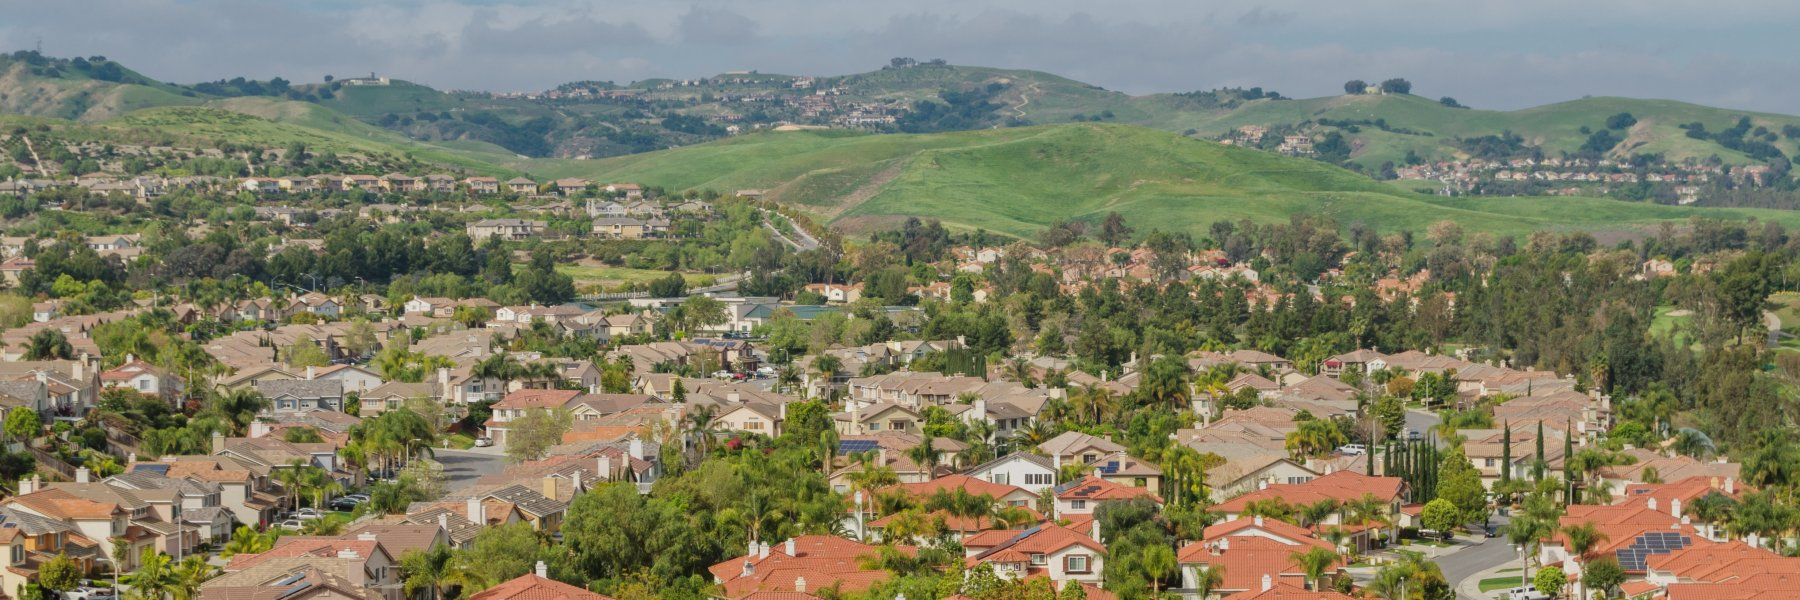 Los Serranos is a community of homes in Chino Hills California